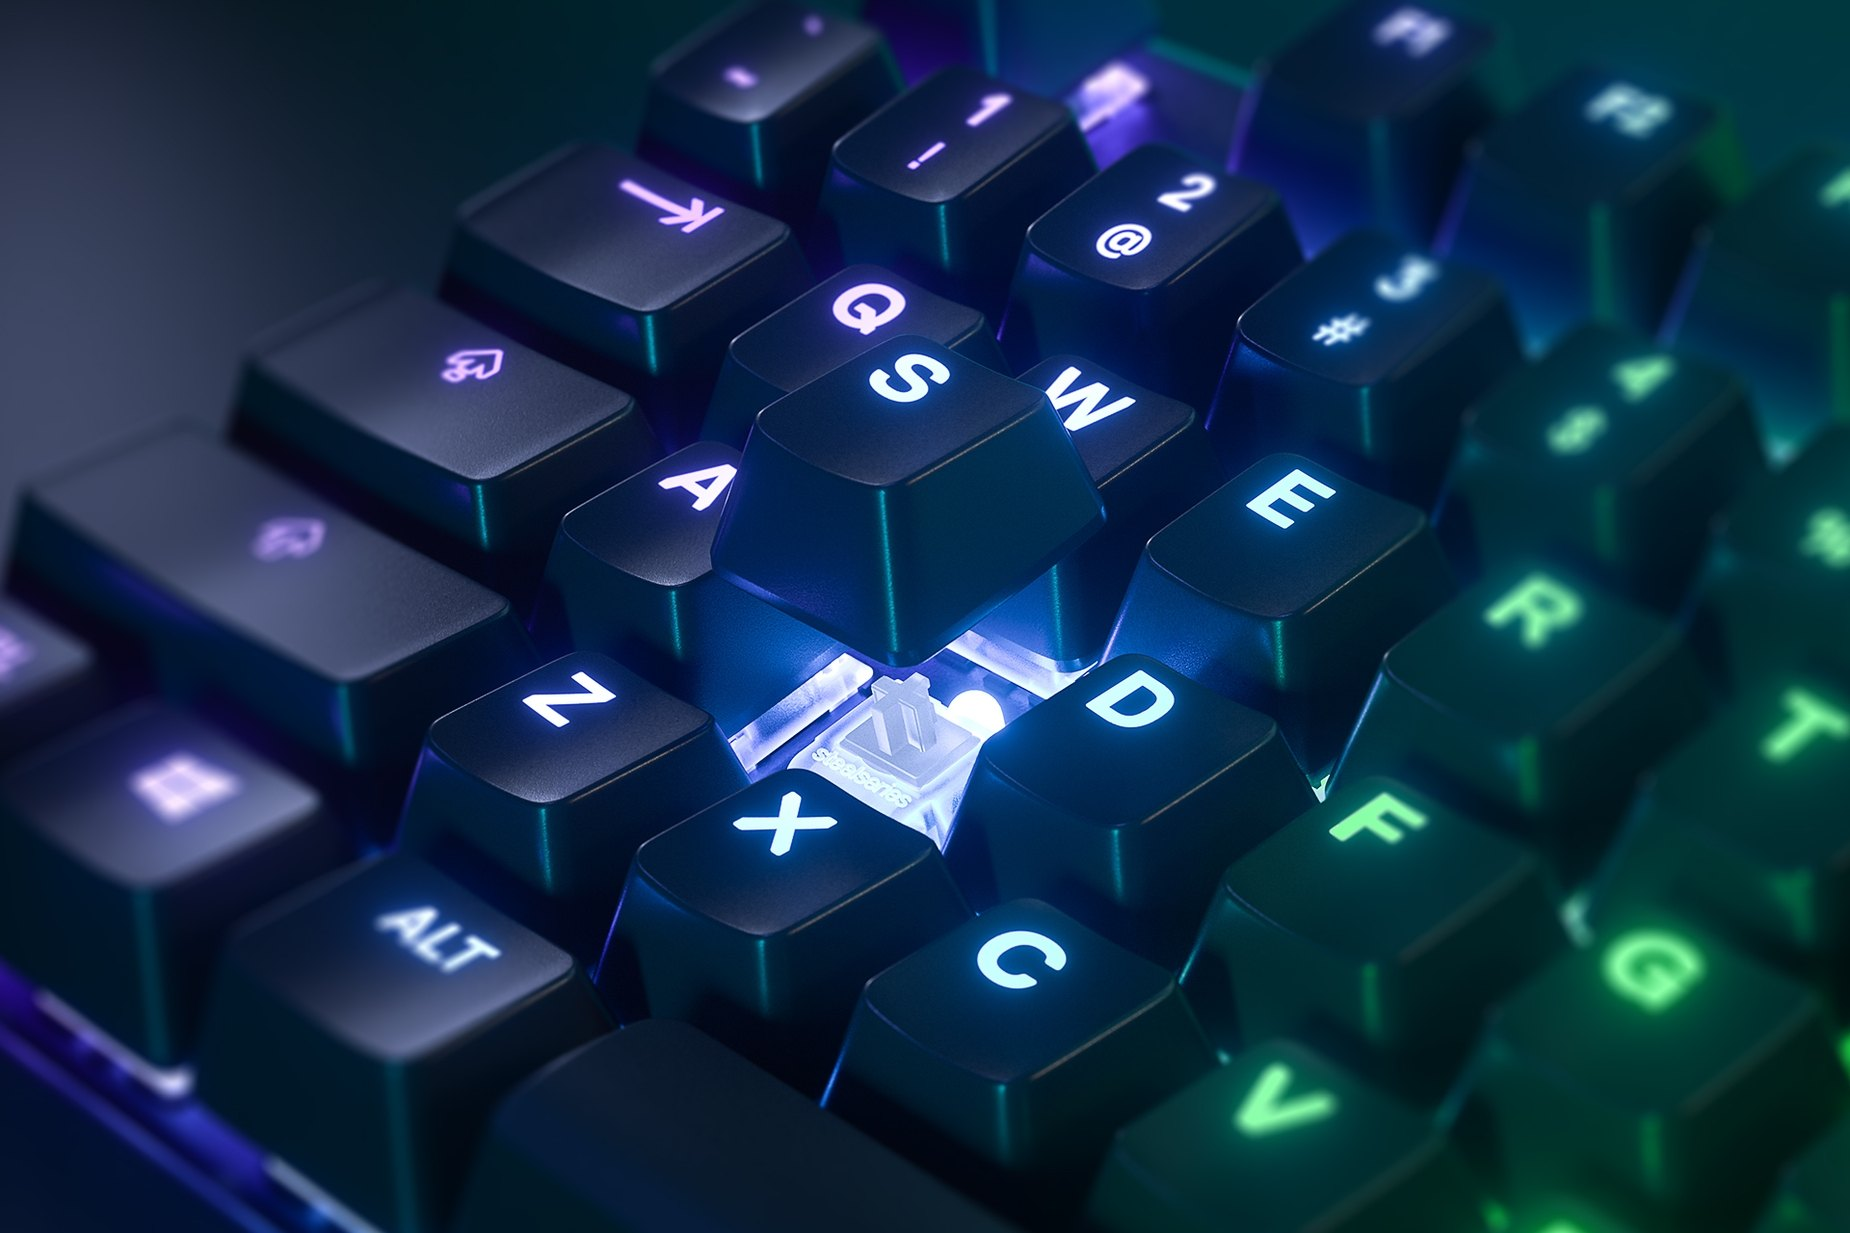 Zoomed in view of a single key on the US English - Apex Pro gaming keyboard, the key is raised up to show the SteelSeries OmniPoint Adjustable Mechanical Switch underneath